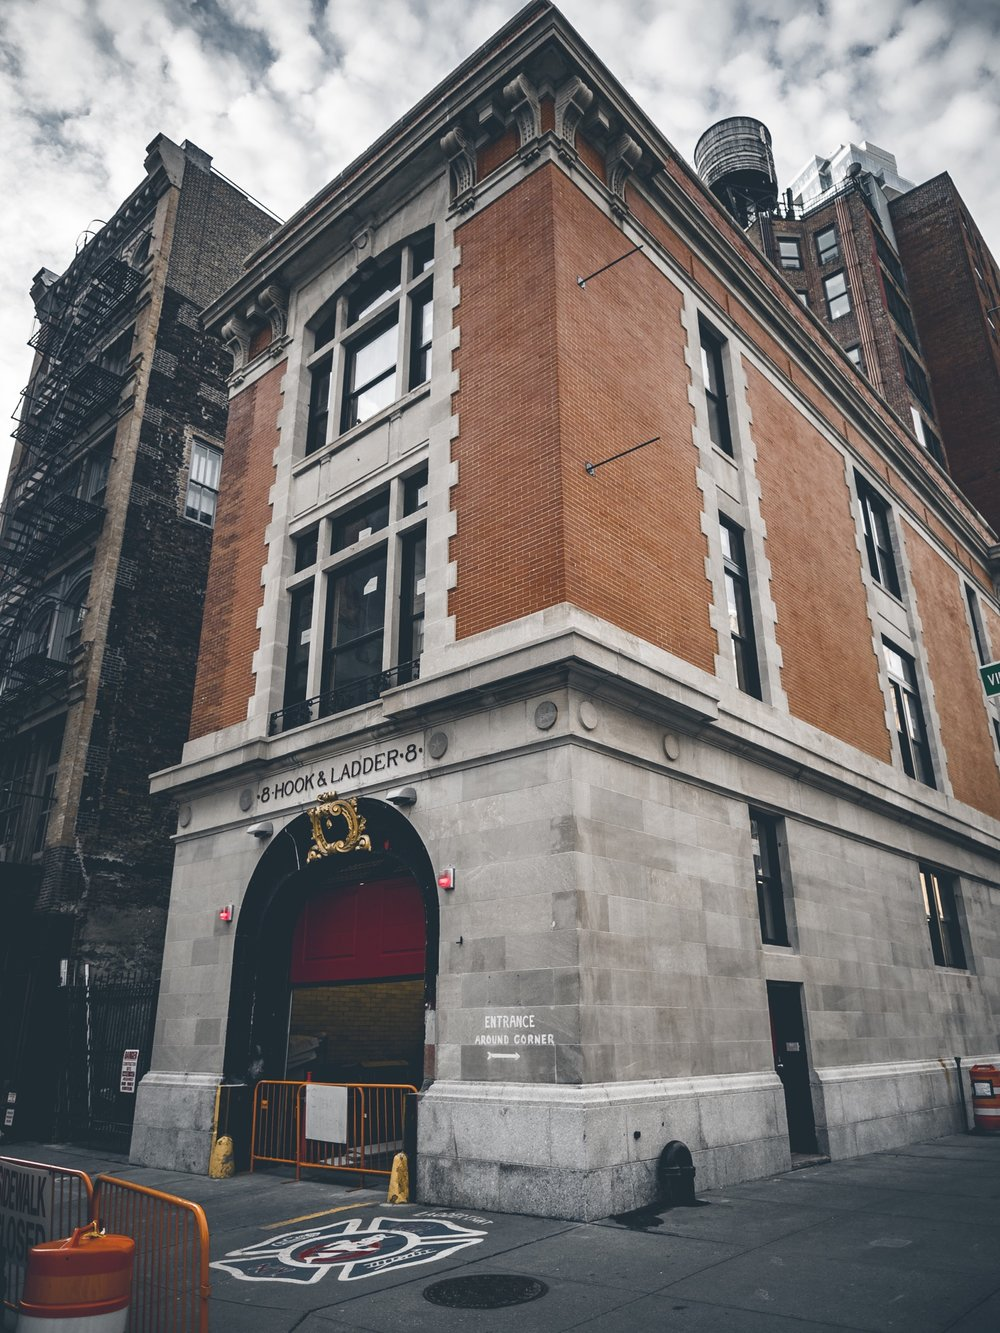 Hook & Ladder 8 NYC New York City Ghostbusters Firestation Firehouse Jay McLaughlin Childhood Nostalgia Movie Location